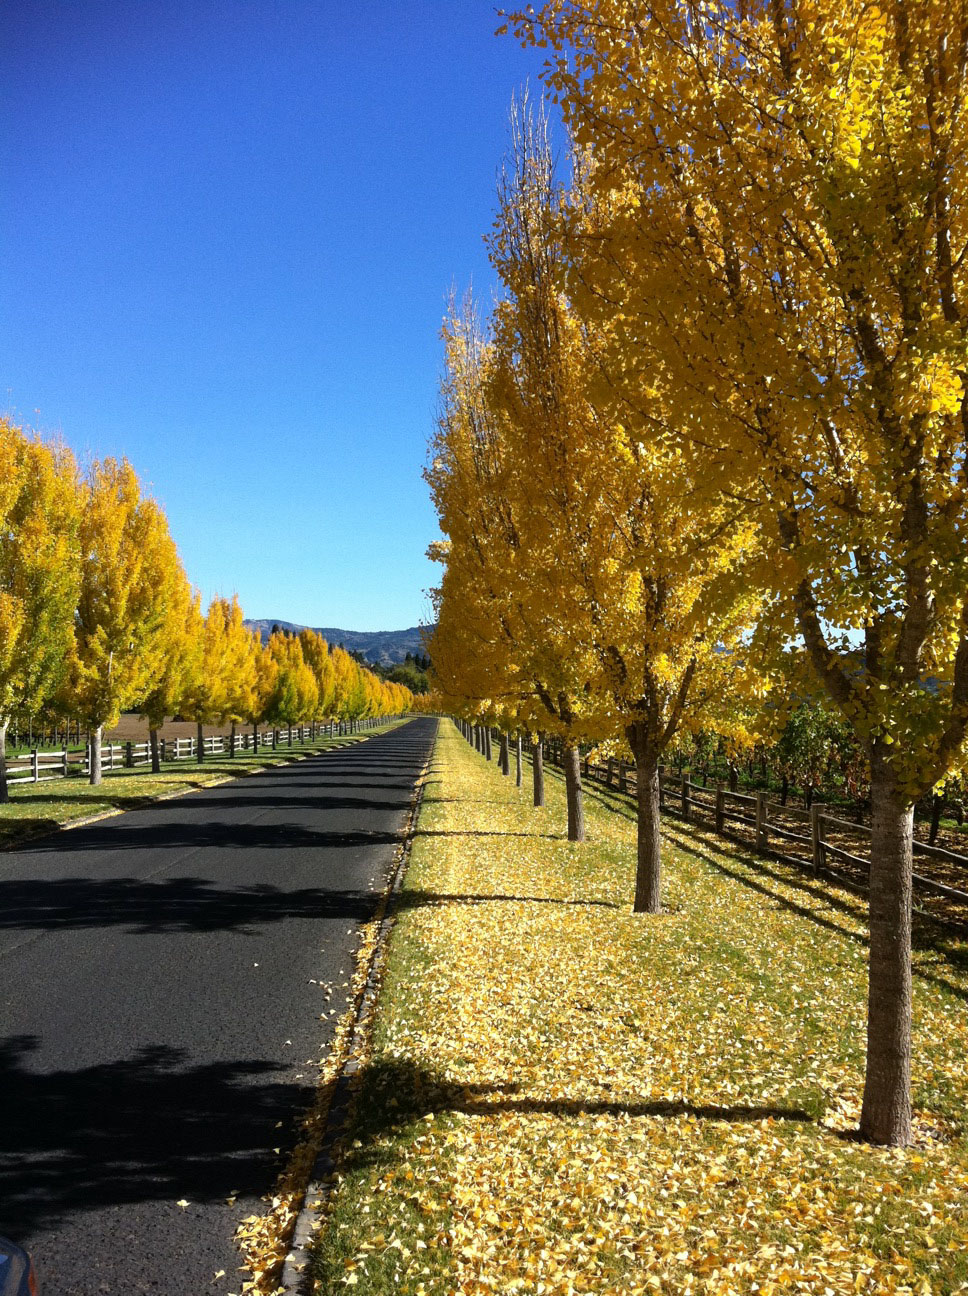 Gingkos at our Napa Valley Vineyard